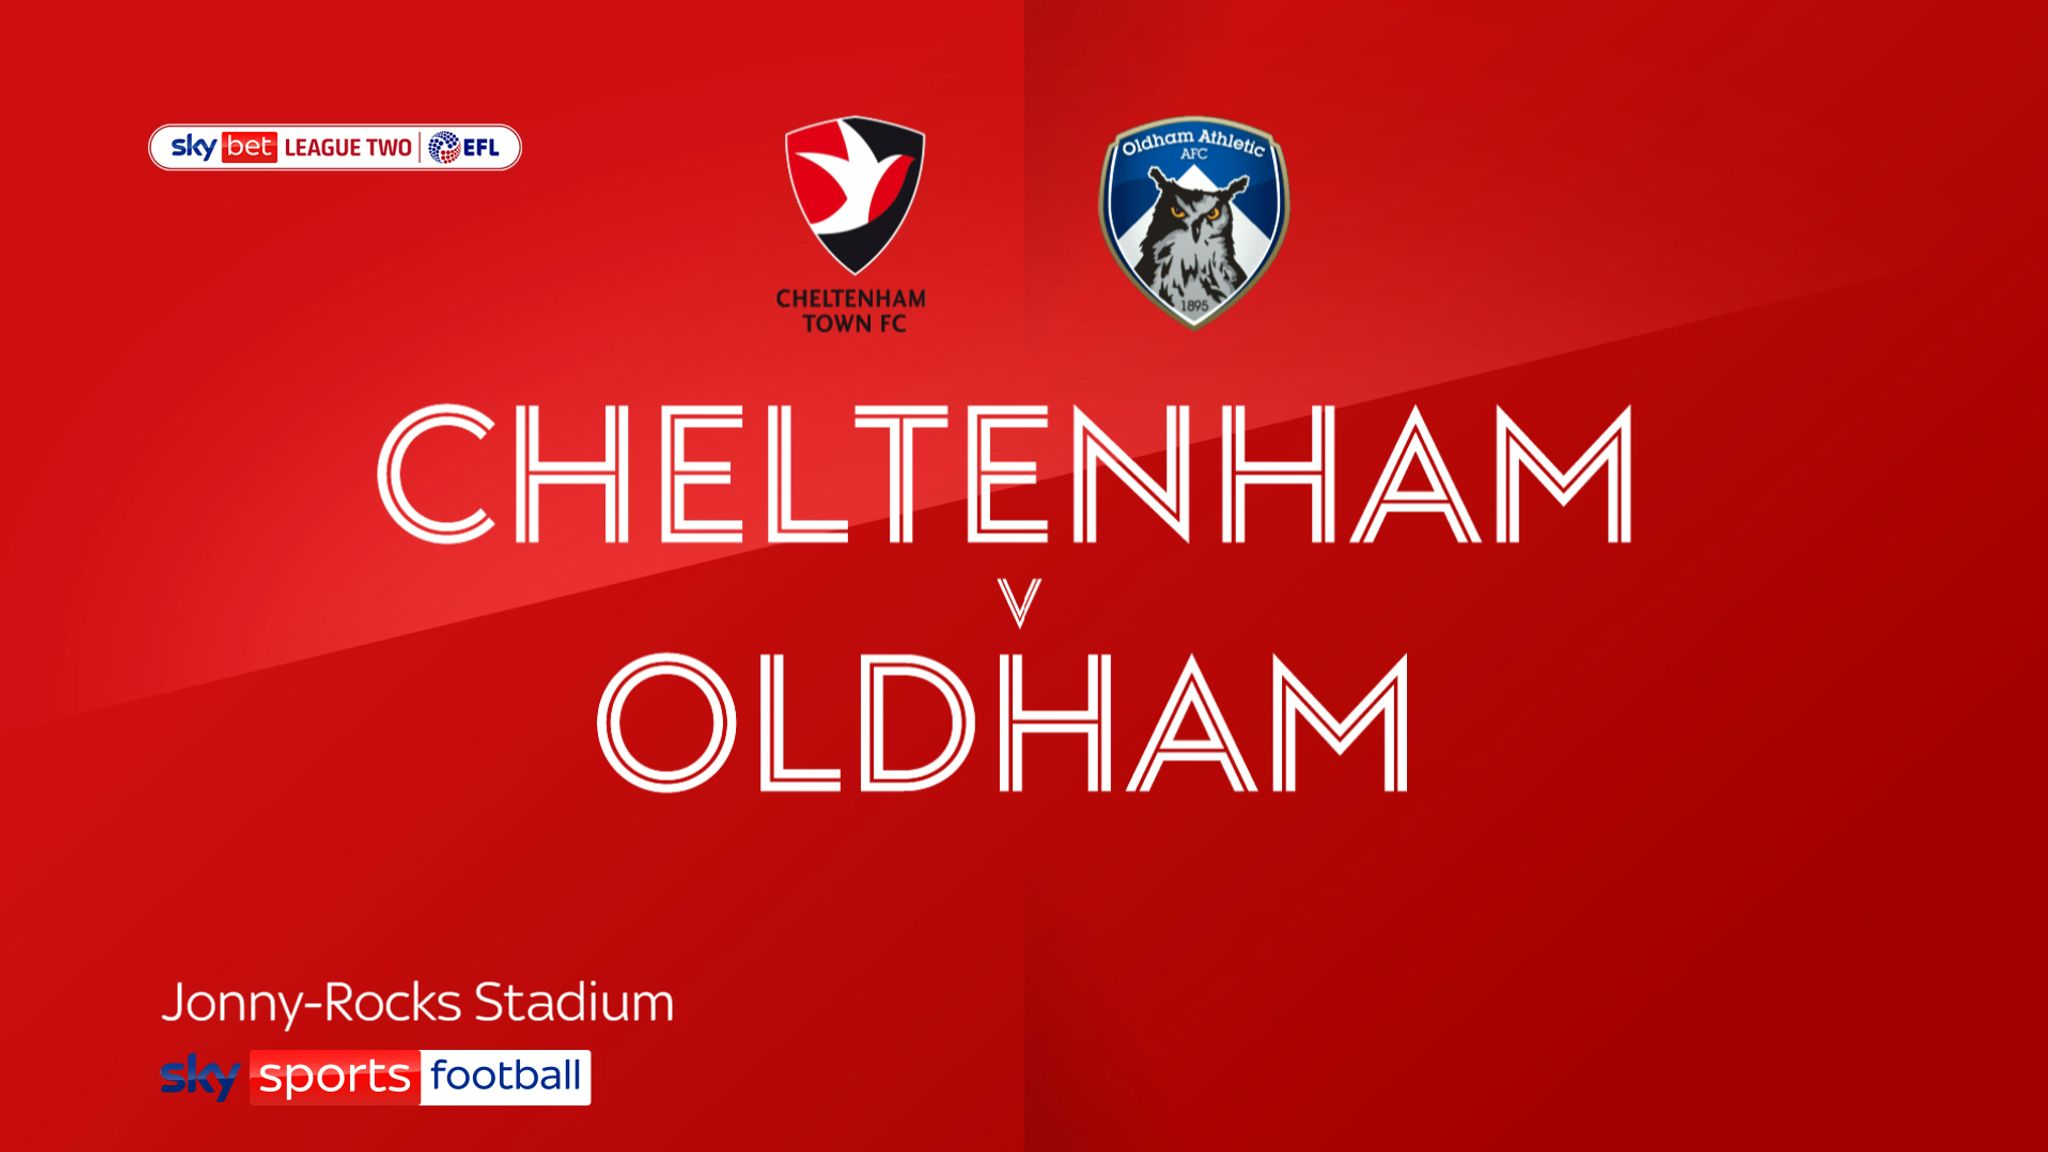 oldham west betting lines